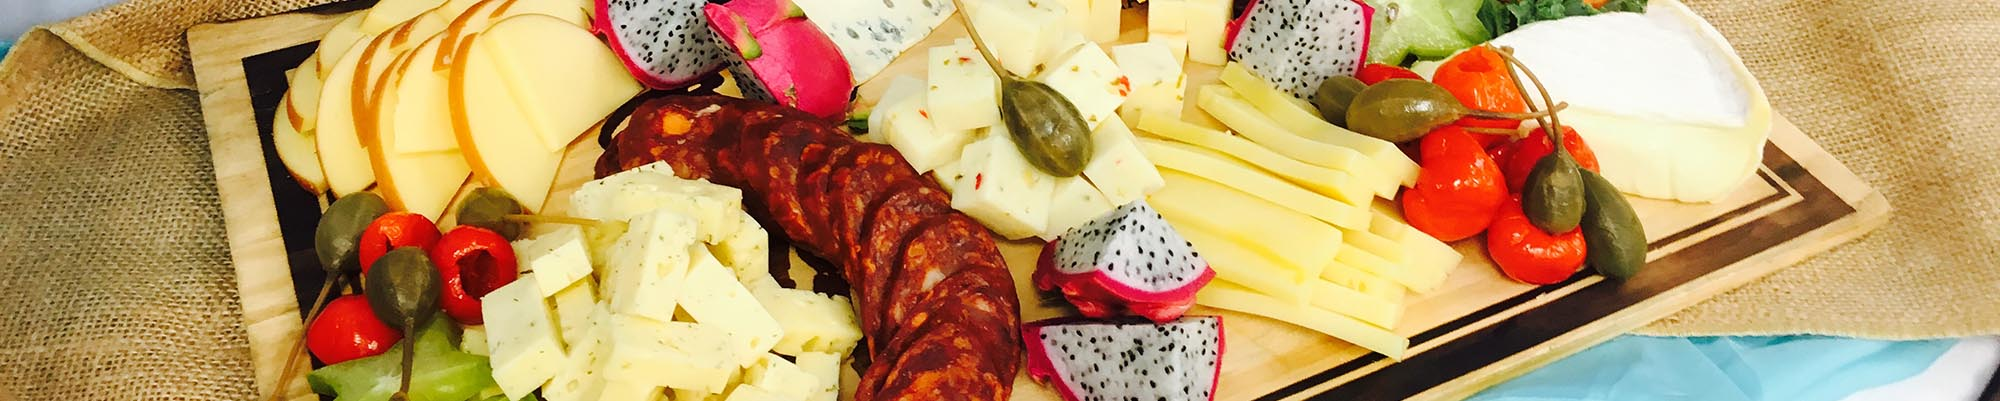 Amici's Cheese Platter